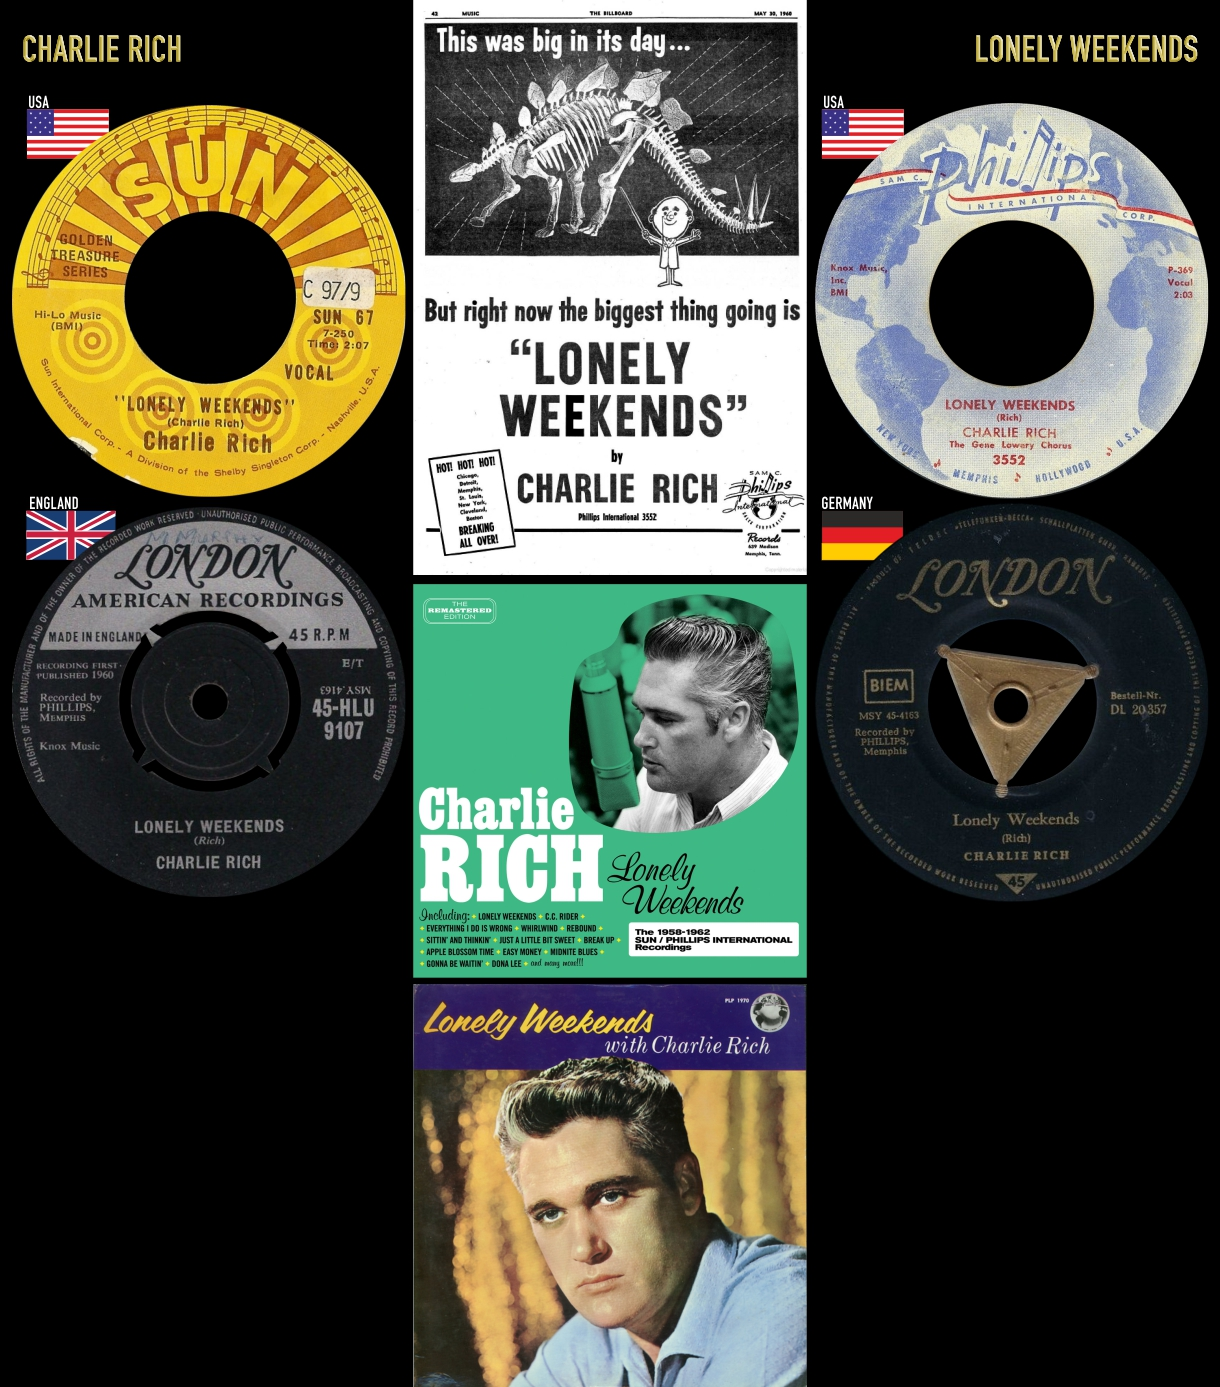 600312_Charlie Rich_Lonely Weekends